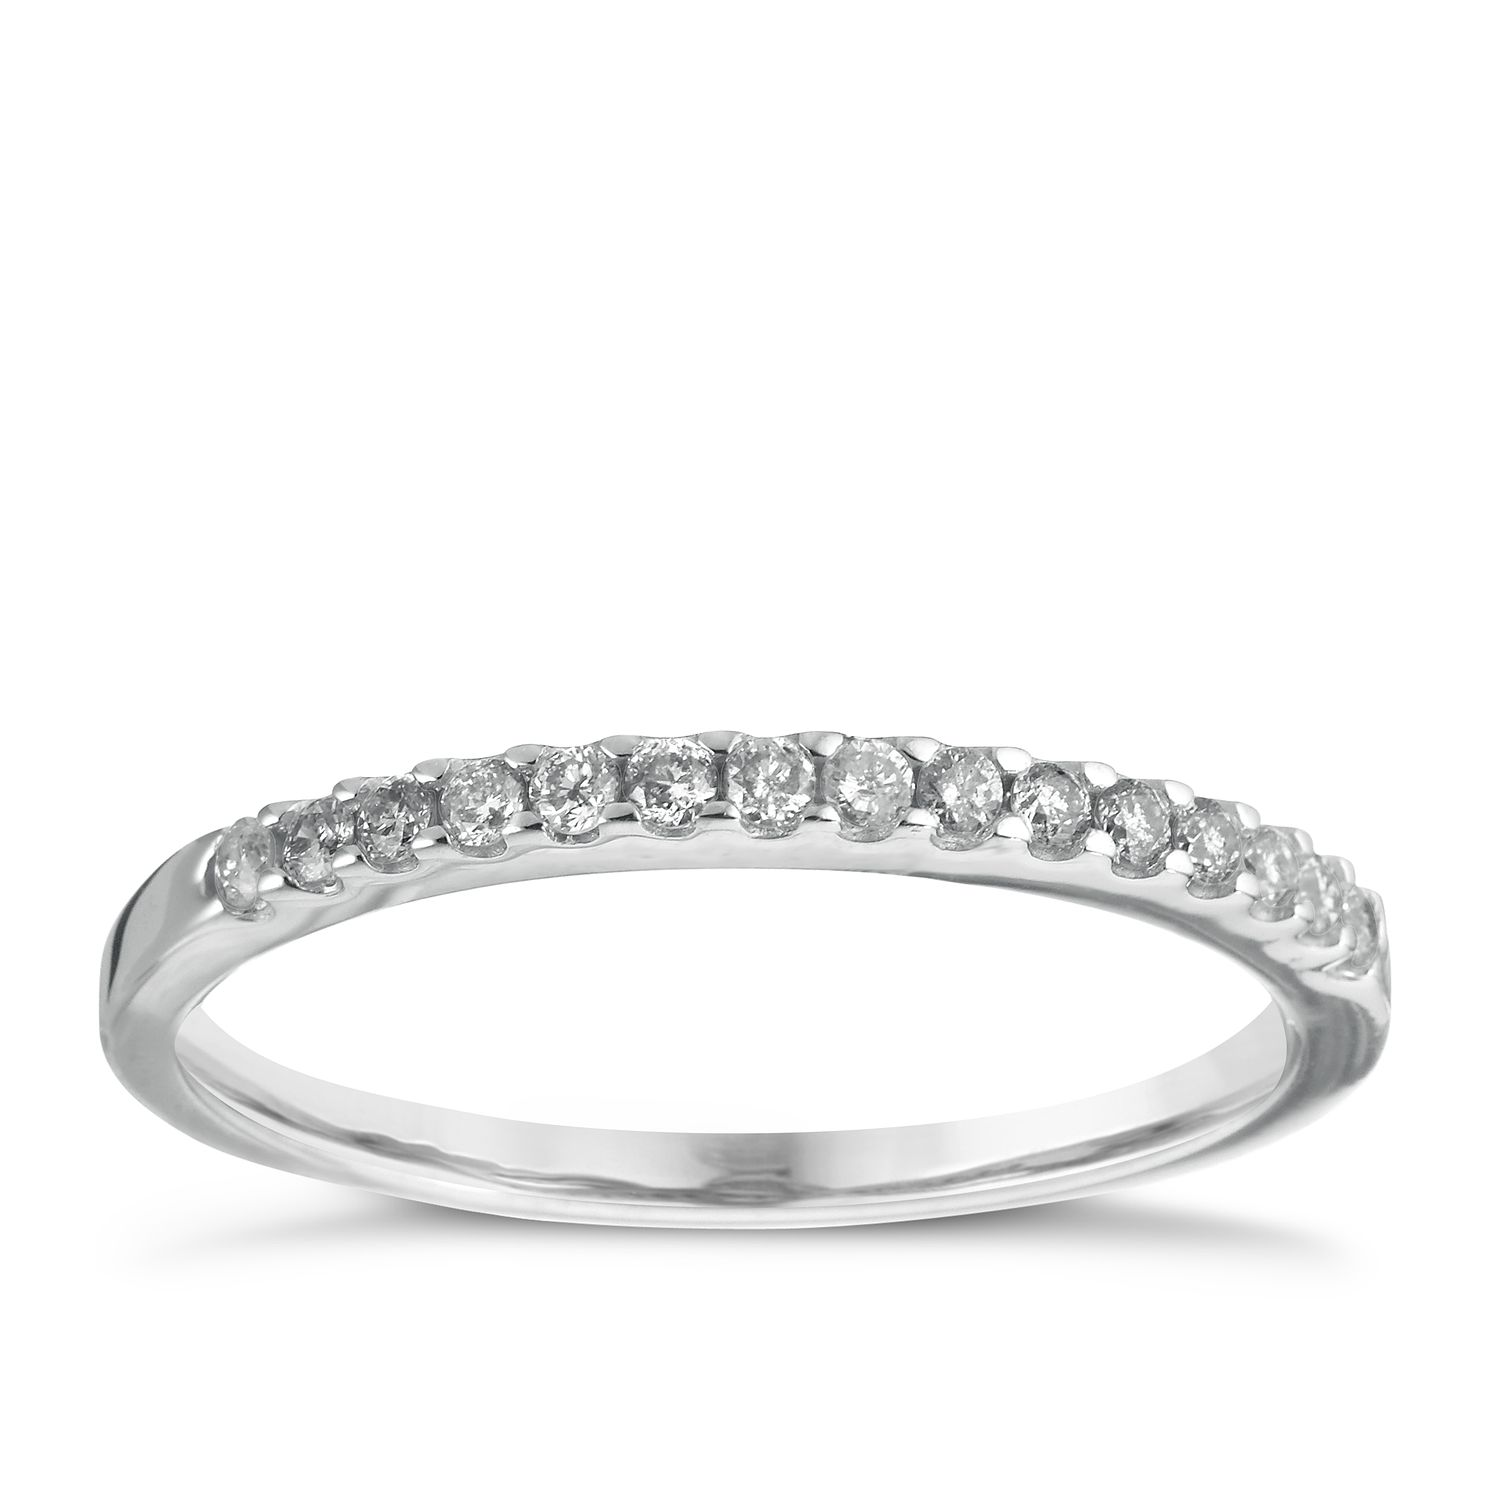 diamond pl band sku bands eternity image anniversary with channel of milgrain set round year platinum